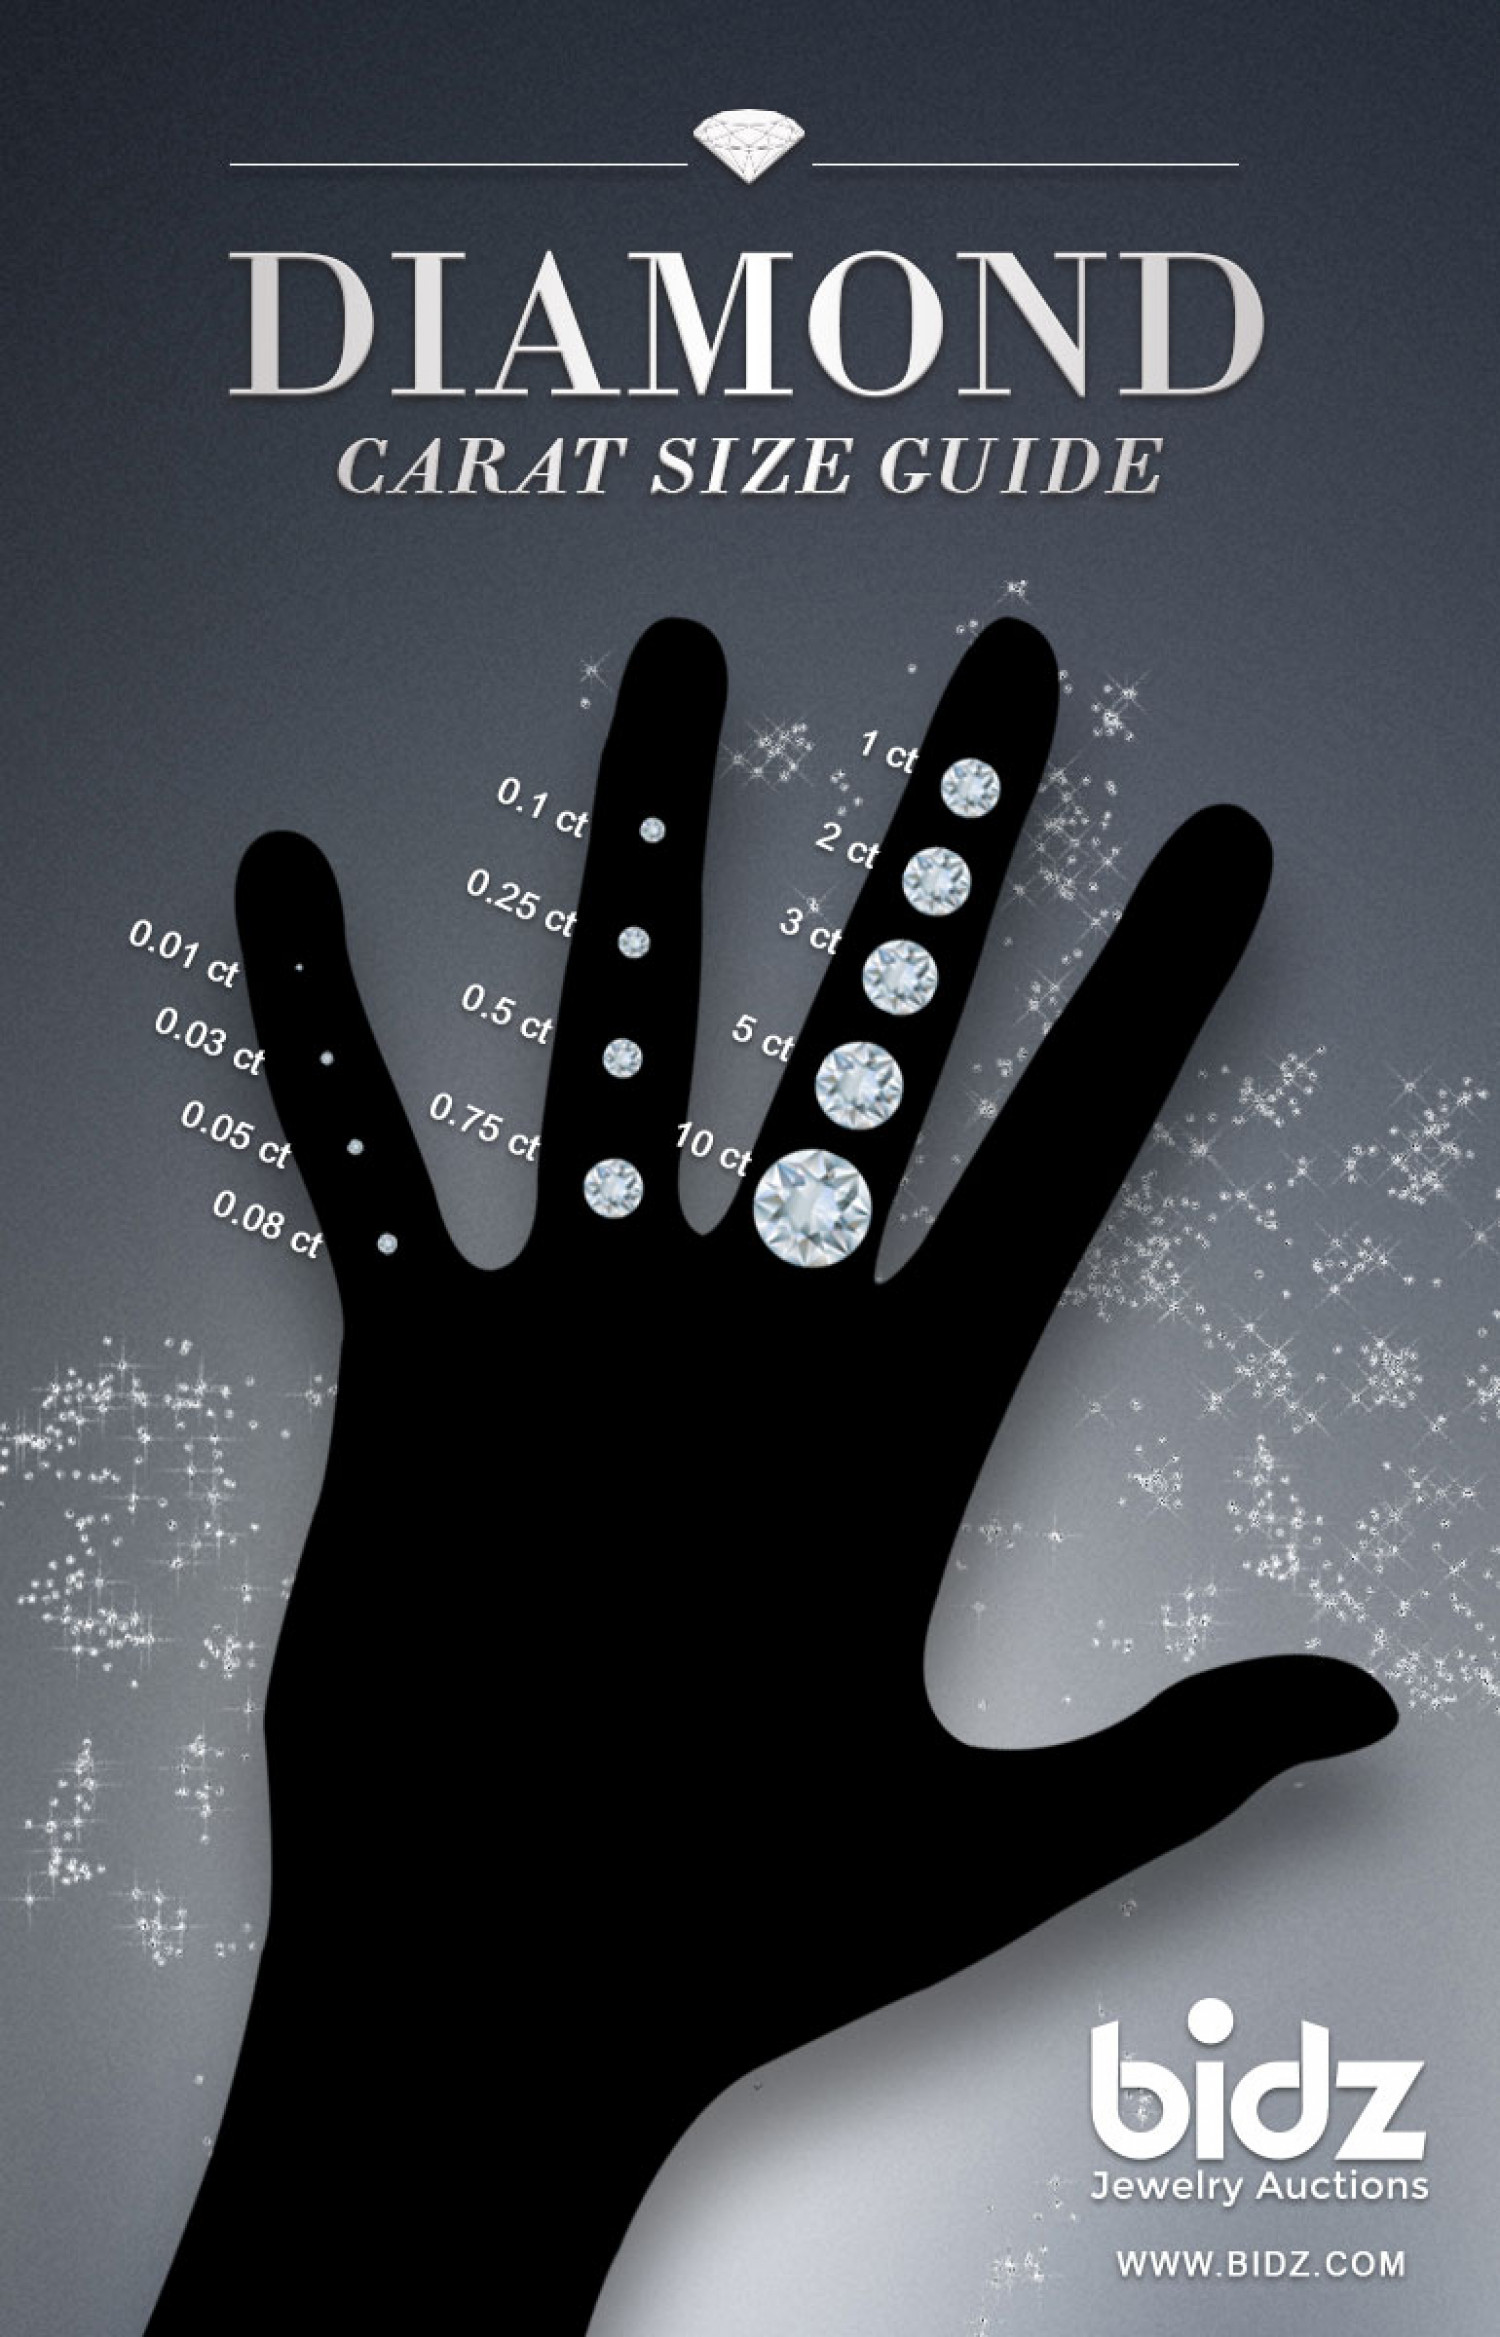 s color carat the diamond comparison guide size on cut about learn diamonds hand buying c with